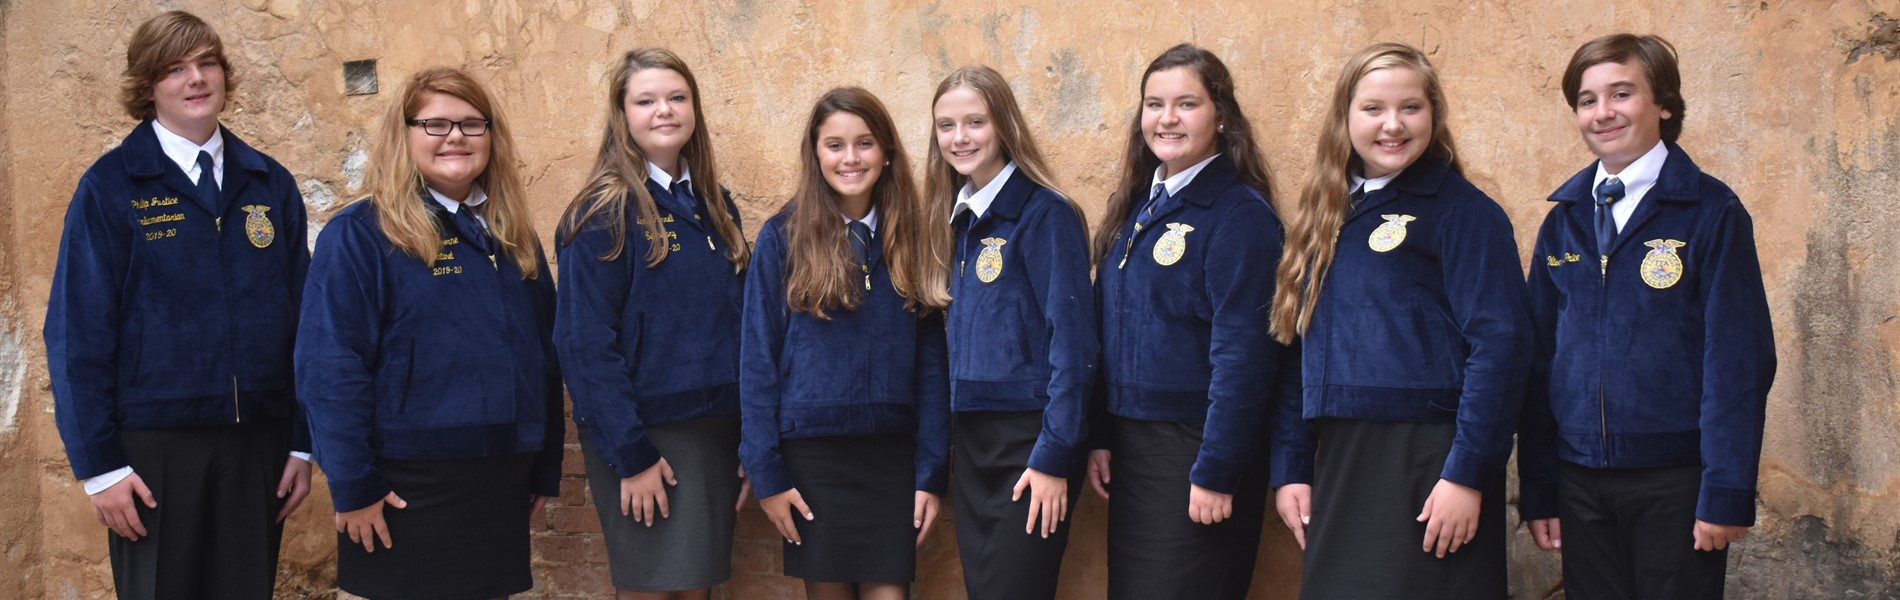 2019-2020 FFA Officers